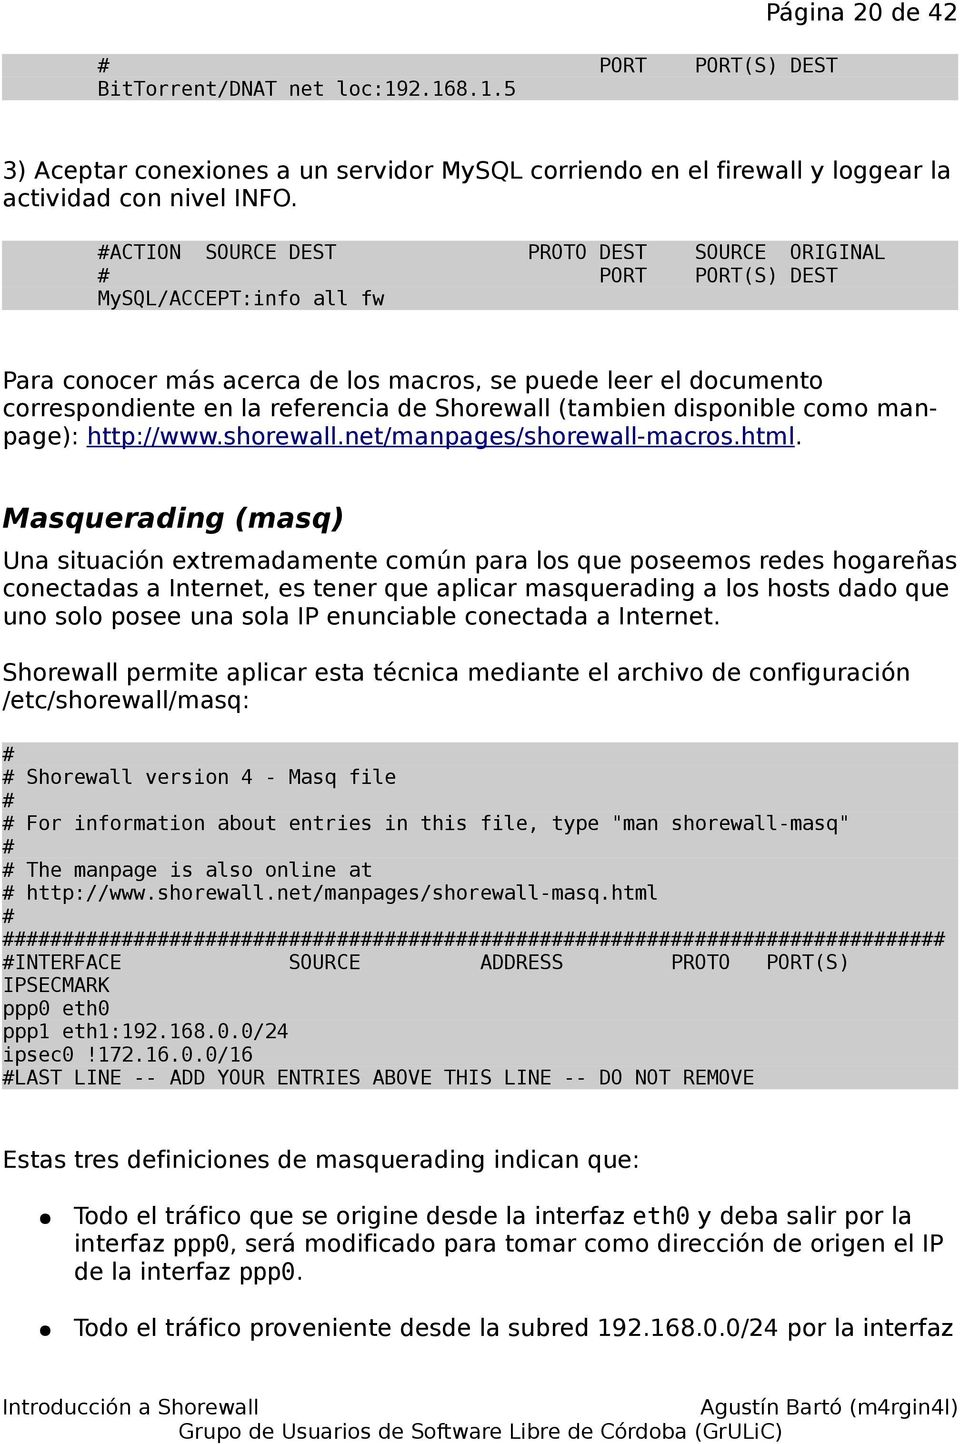 Shorewall (tambien disponible como manpage): http://www.shorewall.net/manpages/shorewall-macros.html.